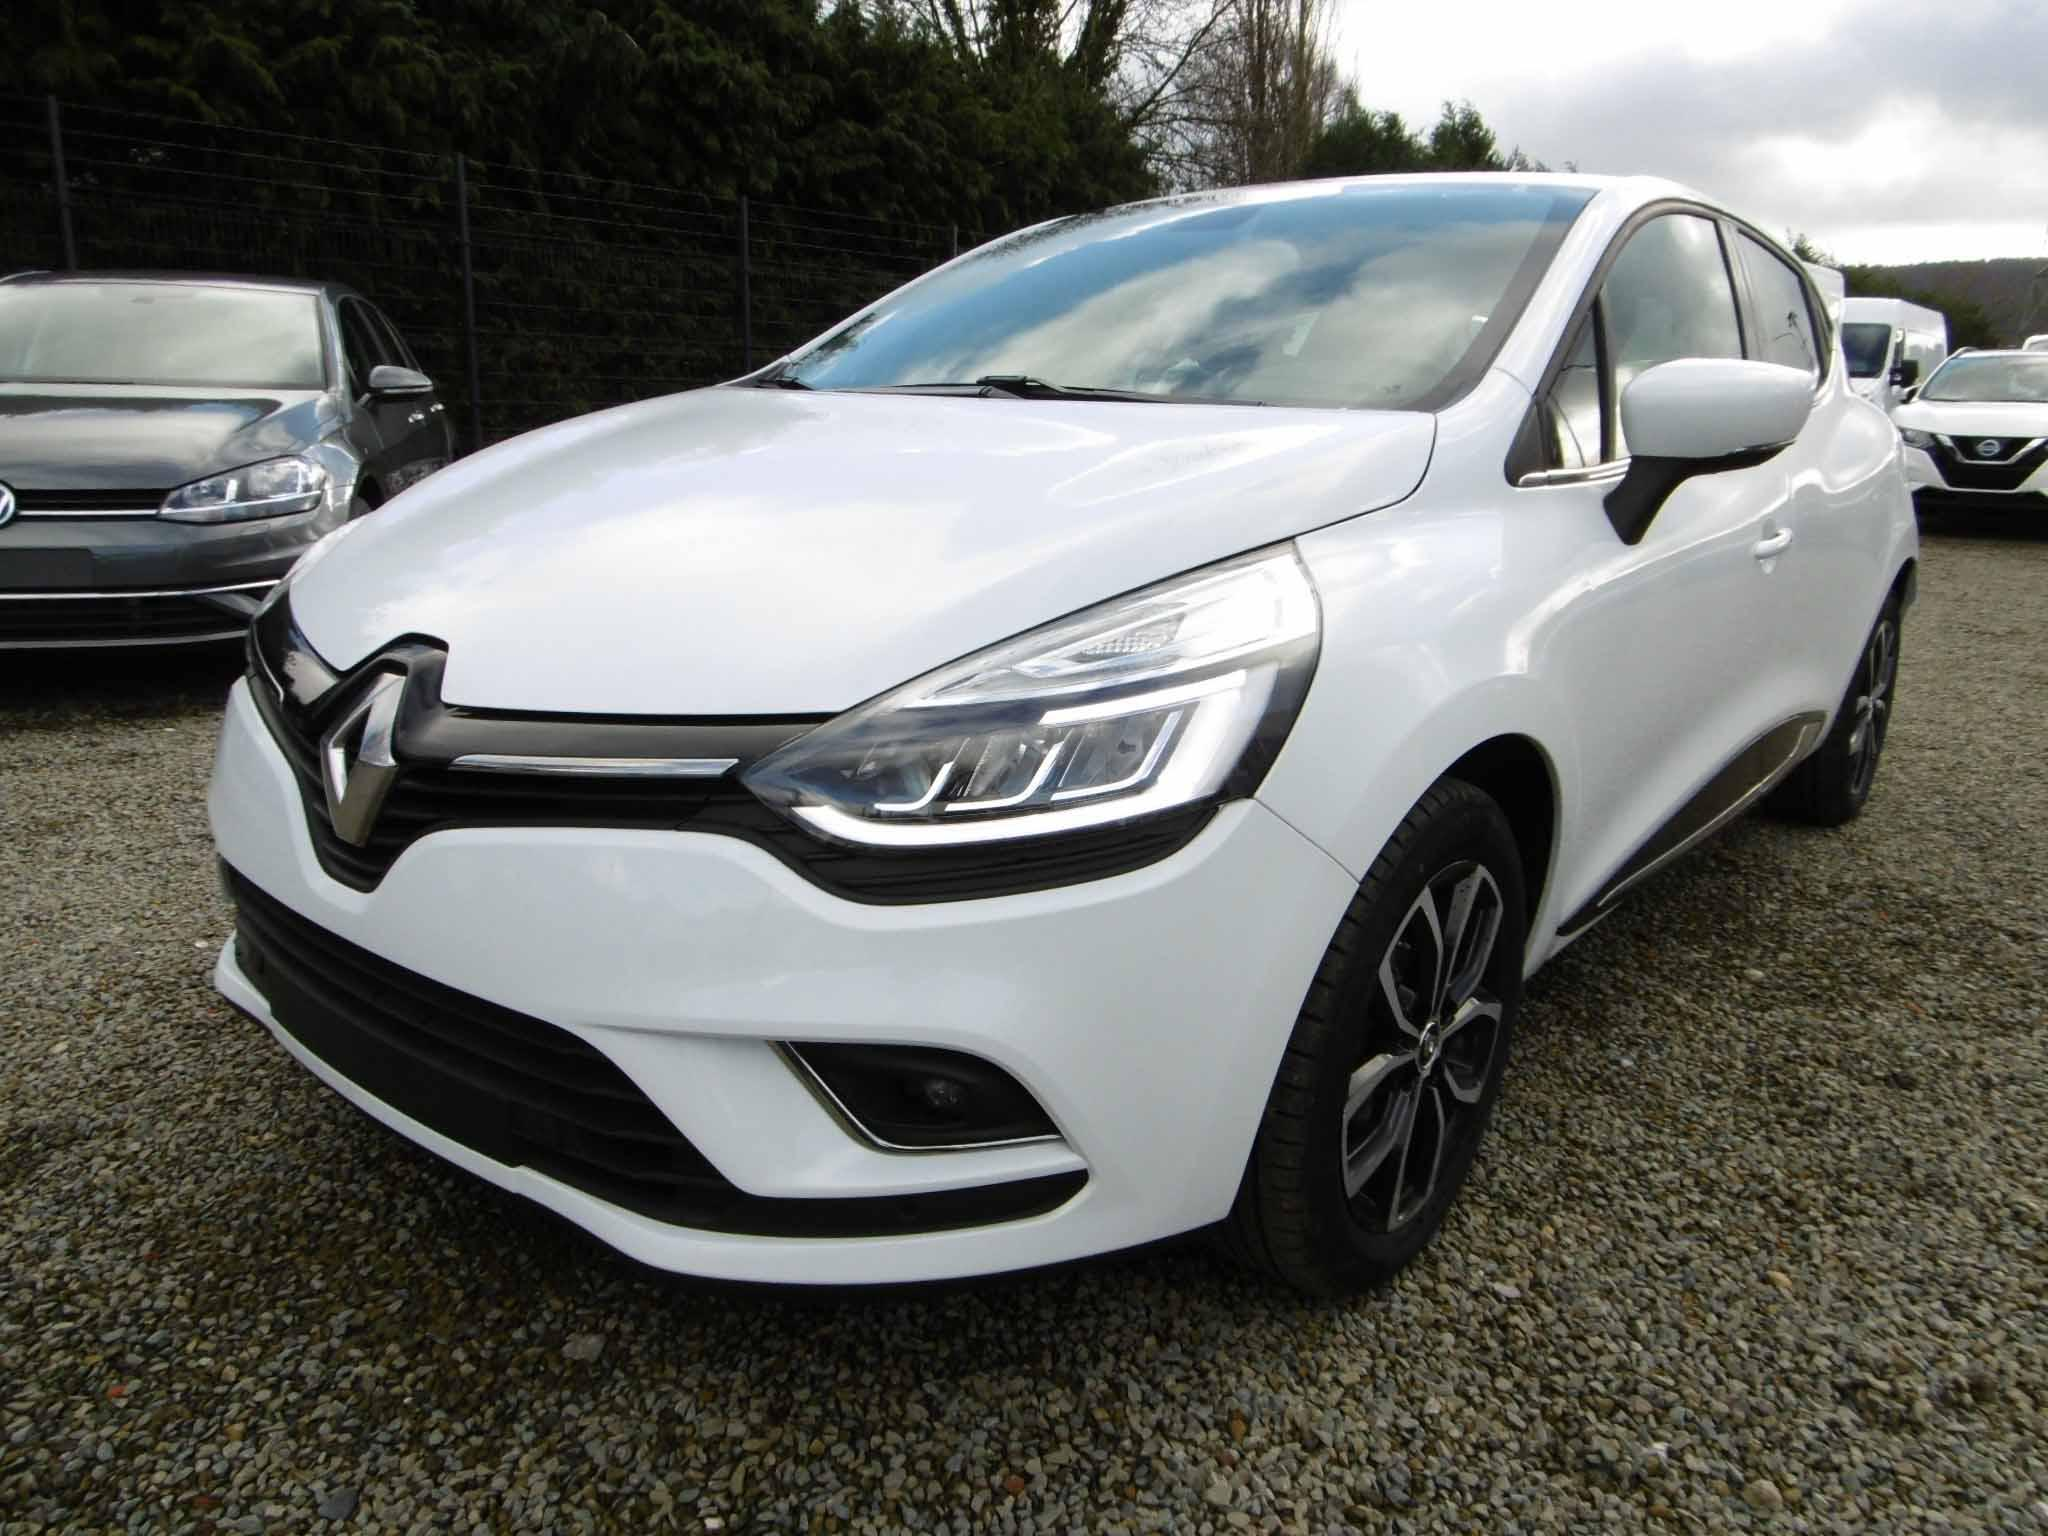 Renault Clio IV 0 9 TCe 90 Intens